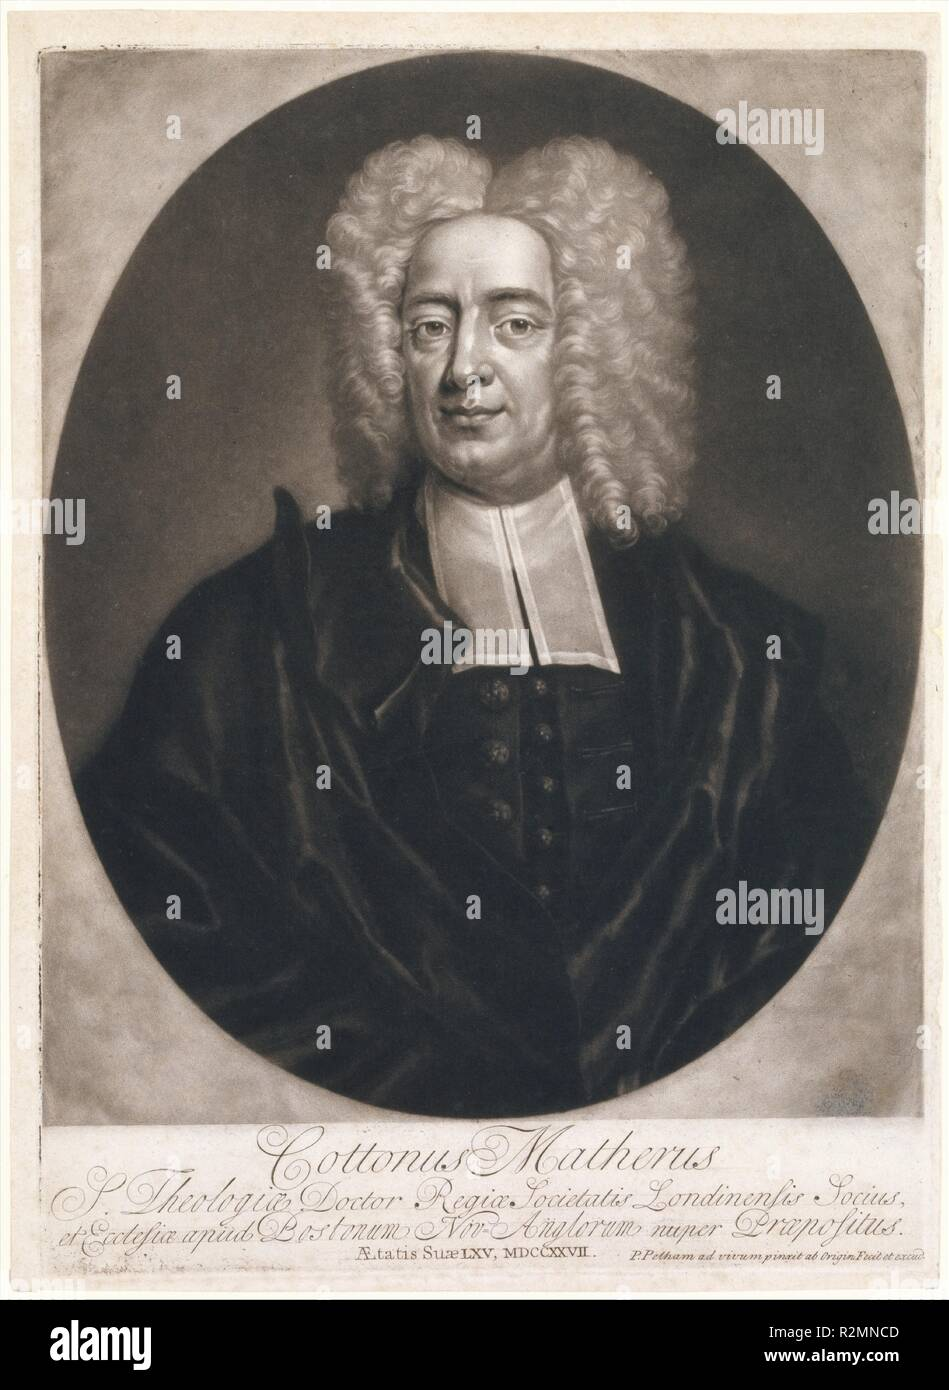 Cottonus Matheris (Cotton Mather). Artist: Engraved, painted and published Boston by Peter Pelham (American (born England), London 1697-1751 Boston, Massachusetts). Dimensions: plate: 13 11/16 x 9 13/16 in. (34.8 x 25 cm)  sheet: 14 3/16 x 10 5/16 in. (36.1 x 26.2 cm). Sitter: Cotton Mather (American, 1663-1728). Date: 1728. Museum: Metropolitan Museum of Art, New York, USA. - Stock Image